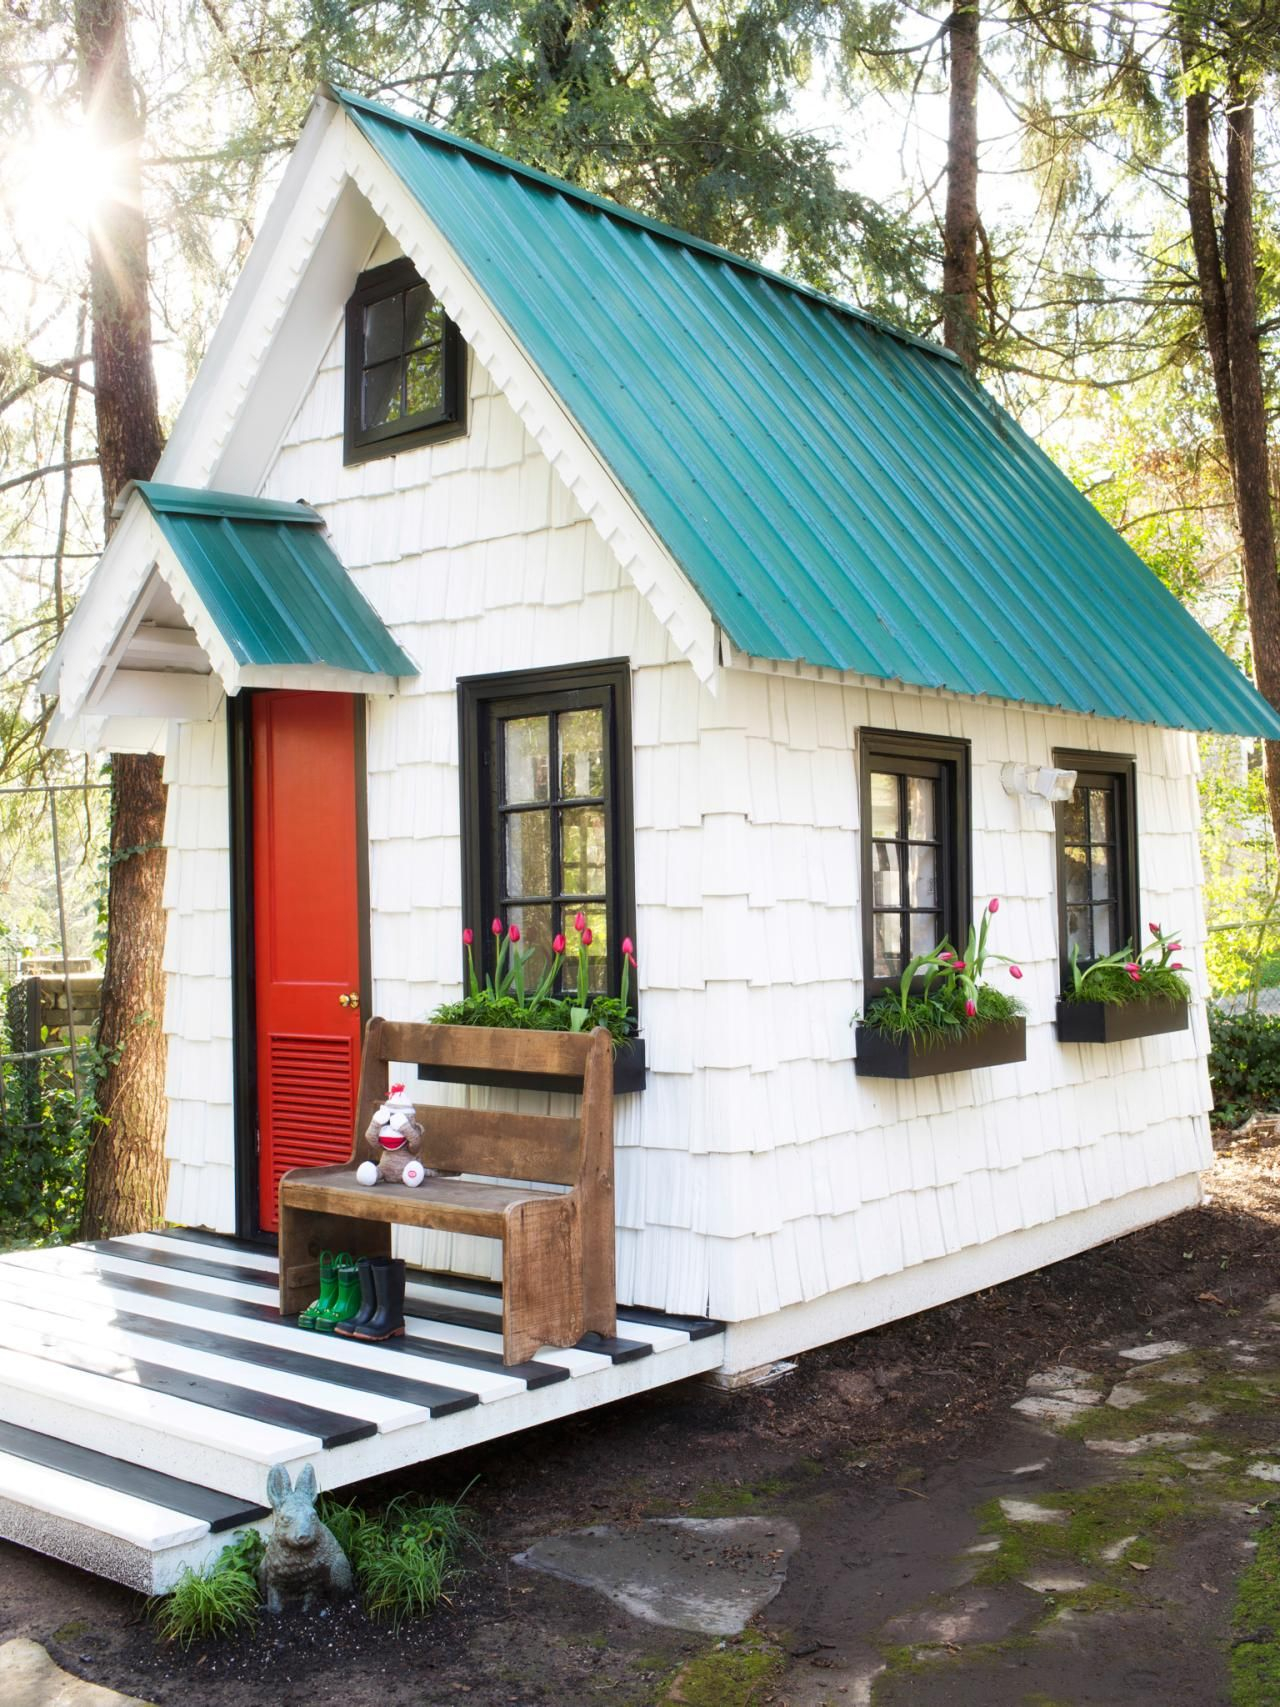 20.SIMPHOME.COM give your backyard an upgrade with these killer shed ideas